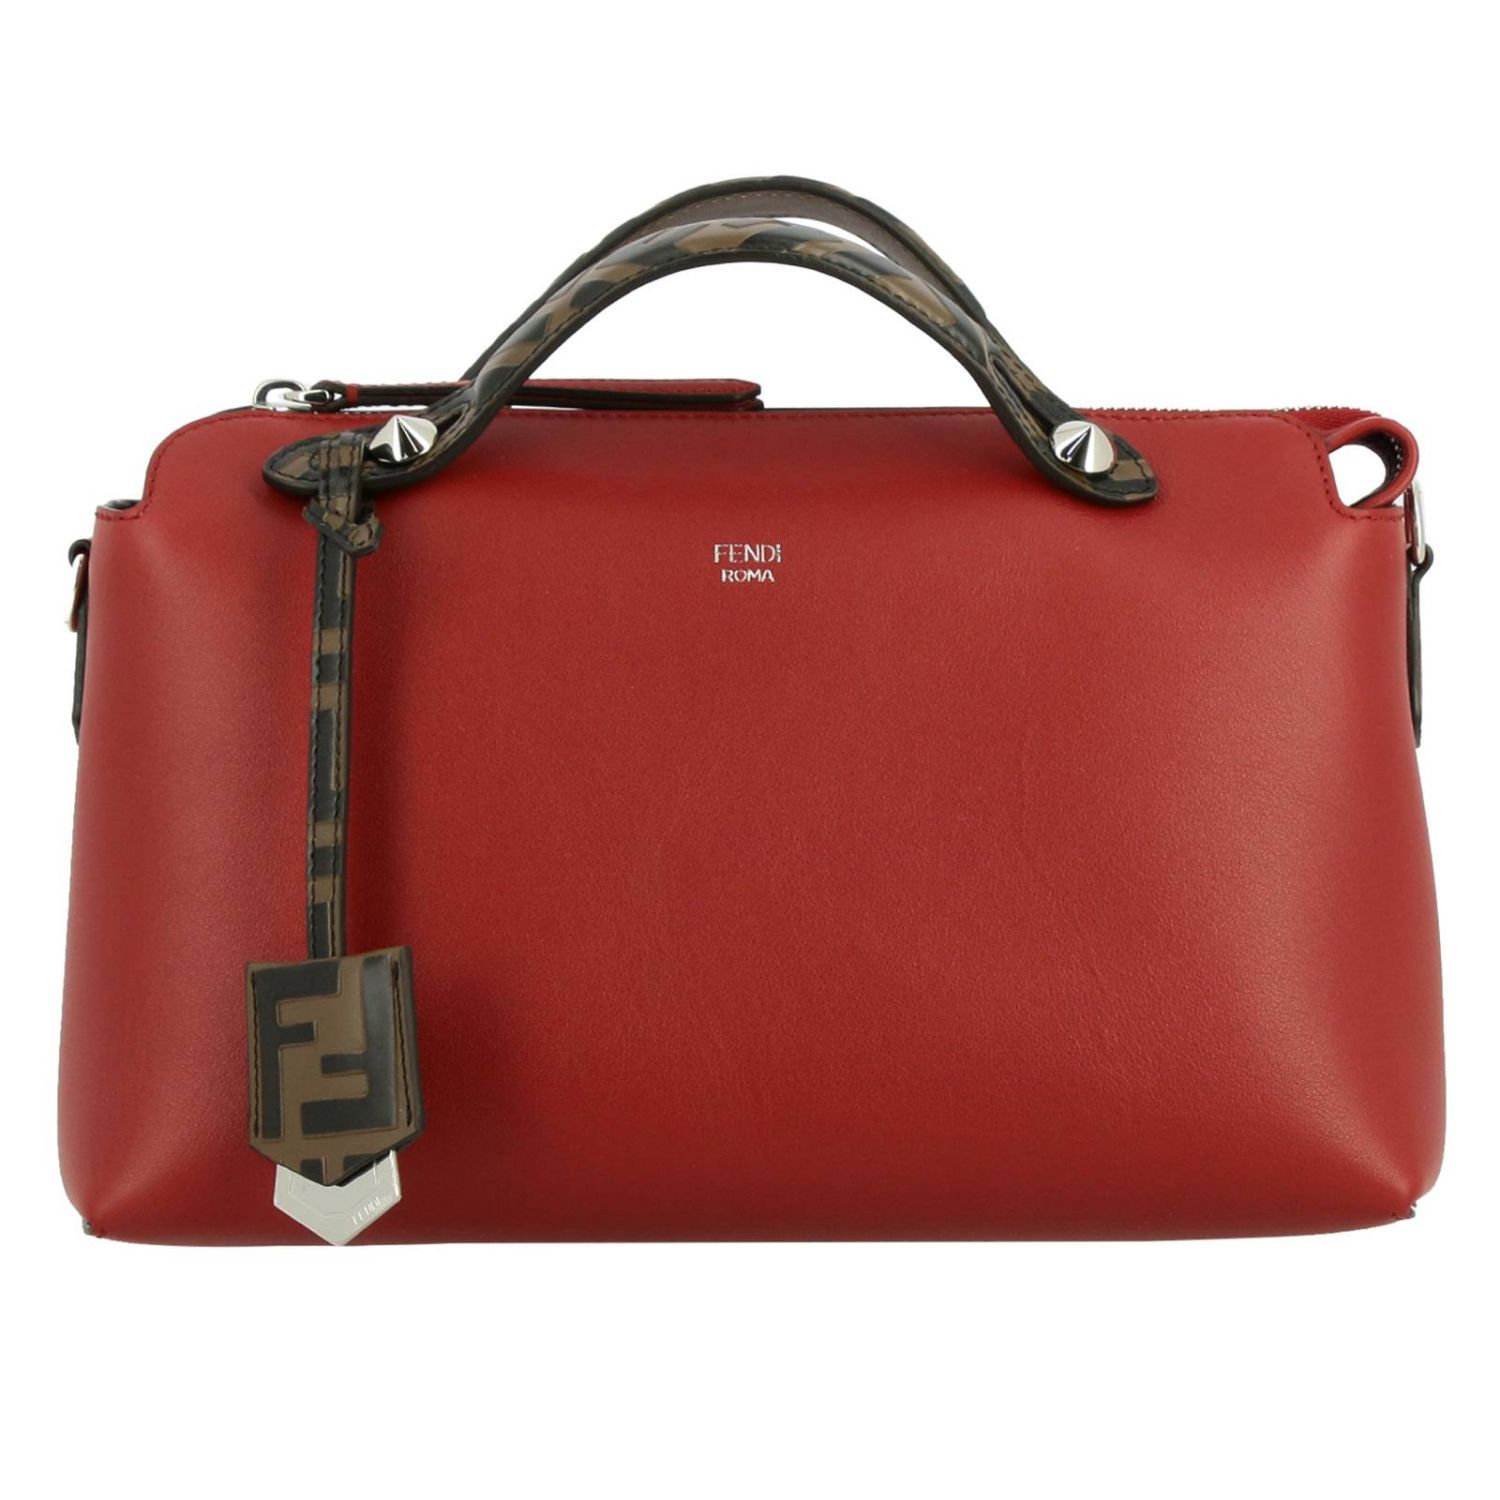 Shoulder Bag Fendi Small Bag By The Way In Smooth Leather With Removable Shoulder Strap And Ff Fendi Handles